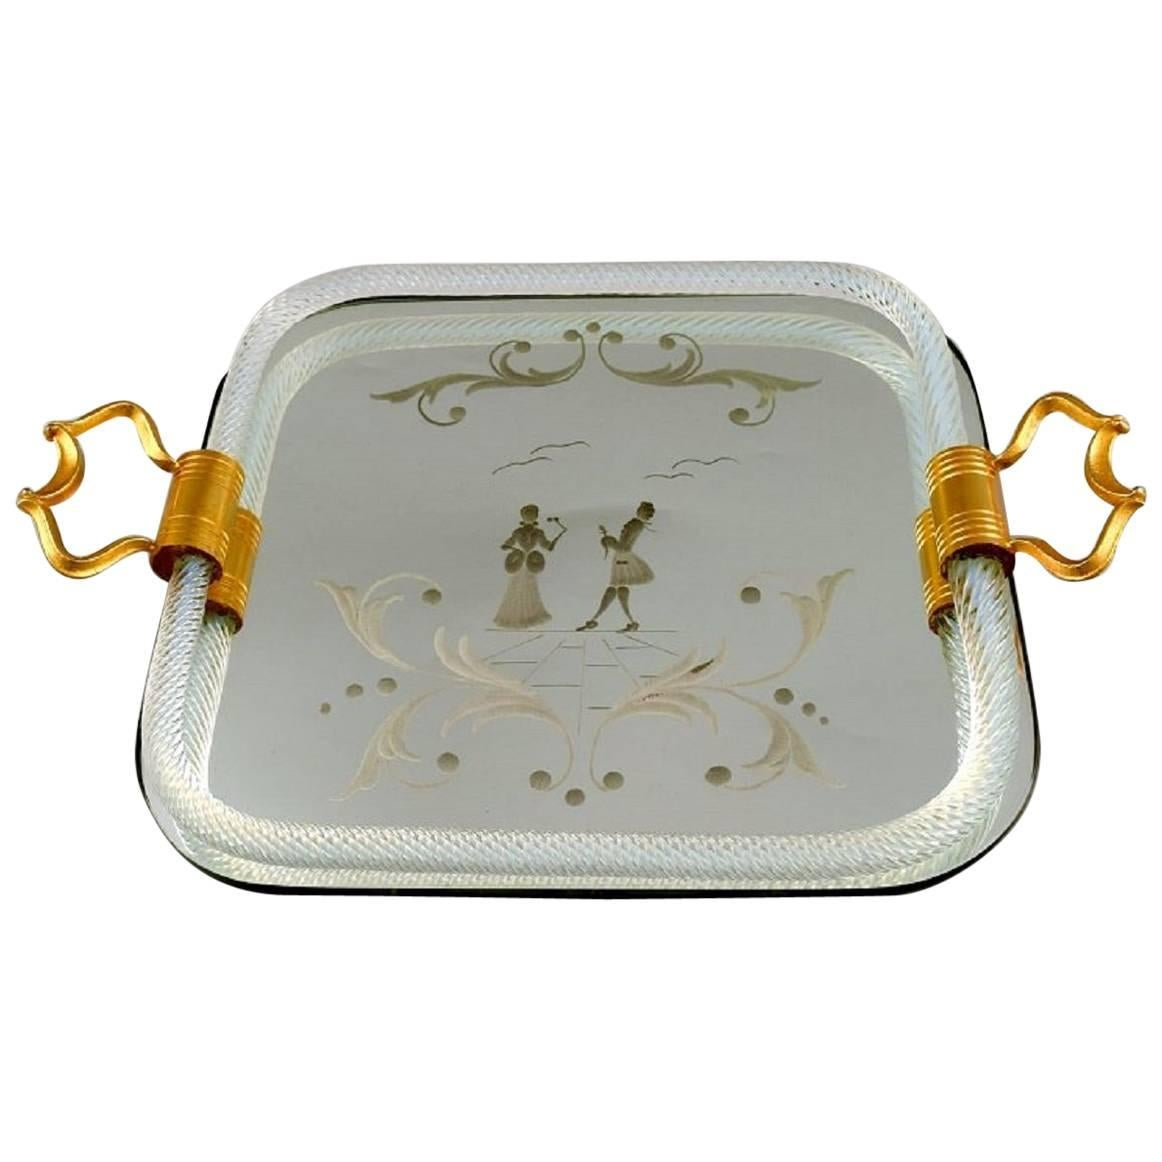 Murano, Italy, Rectangular Tray with Mirrored Plate